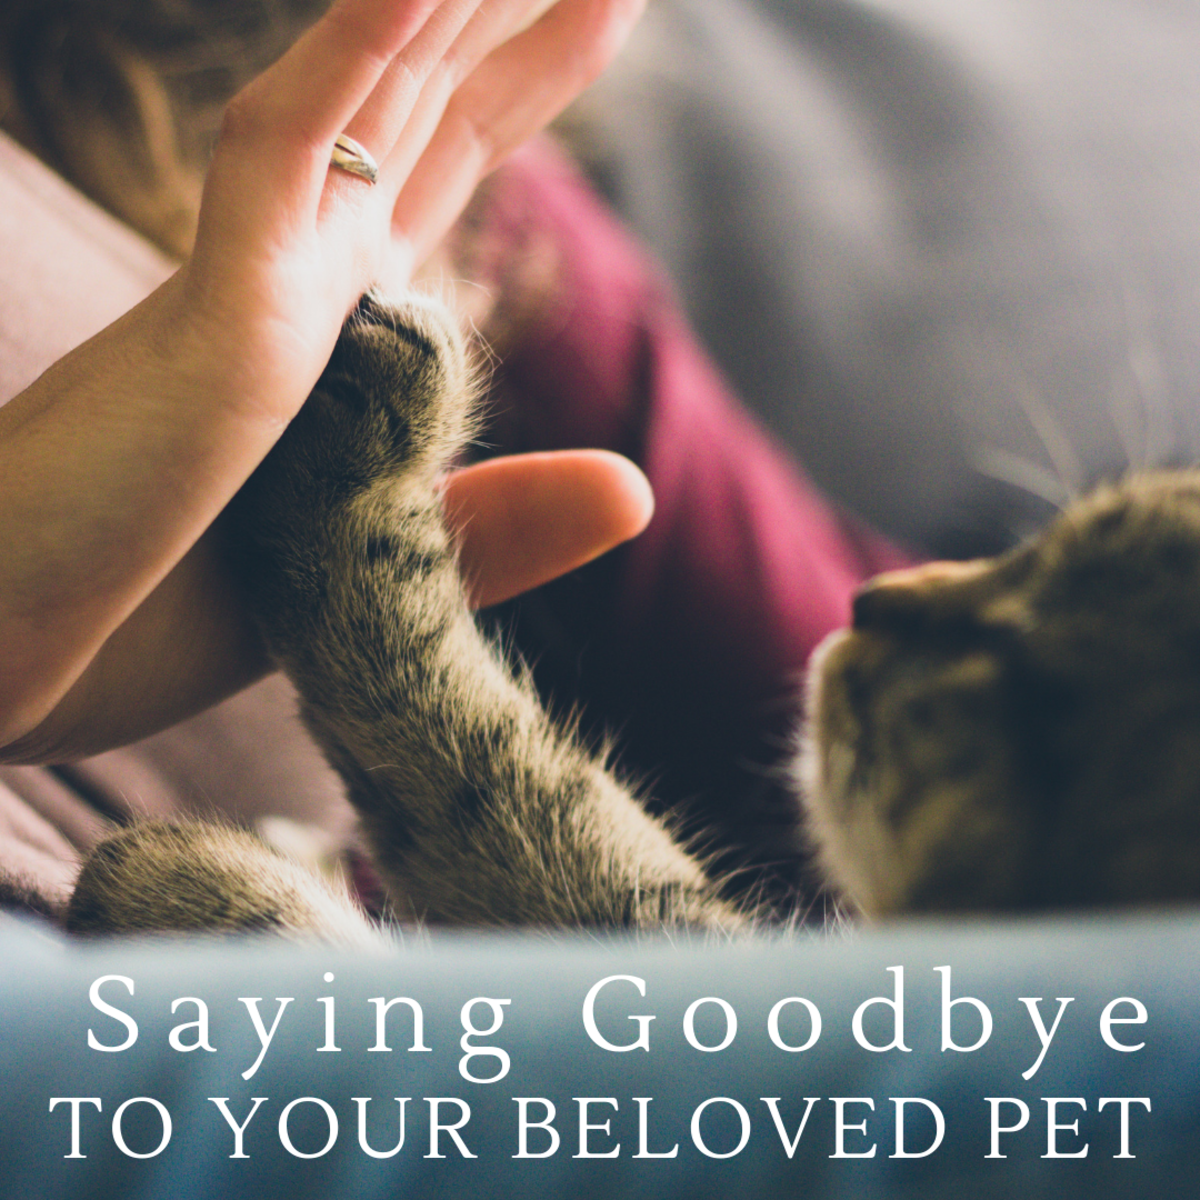 Saying a final farewell to a pet you love is painful.